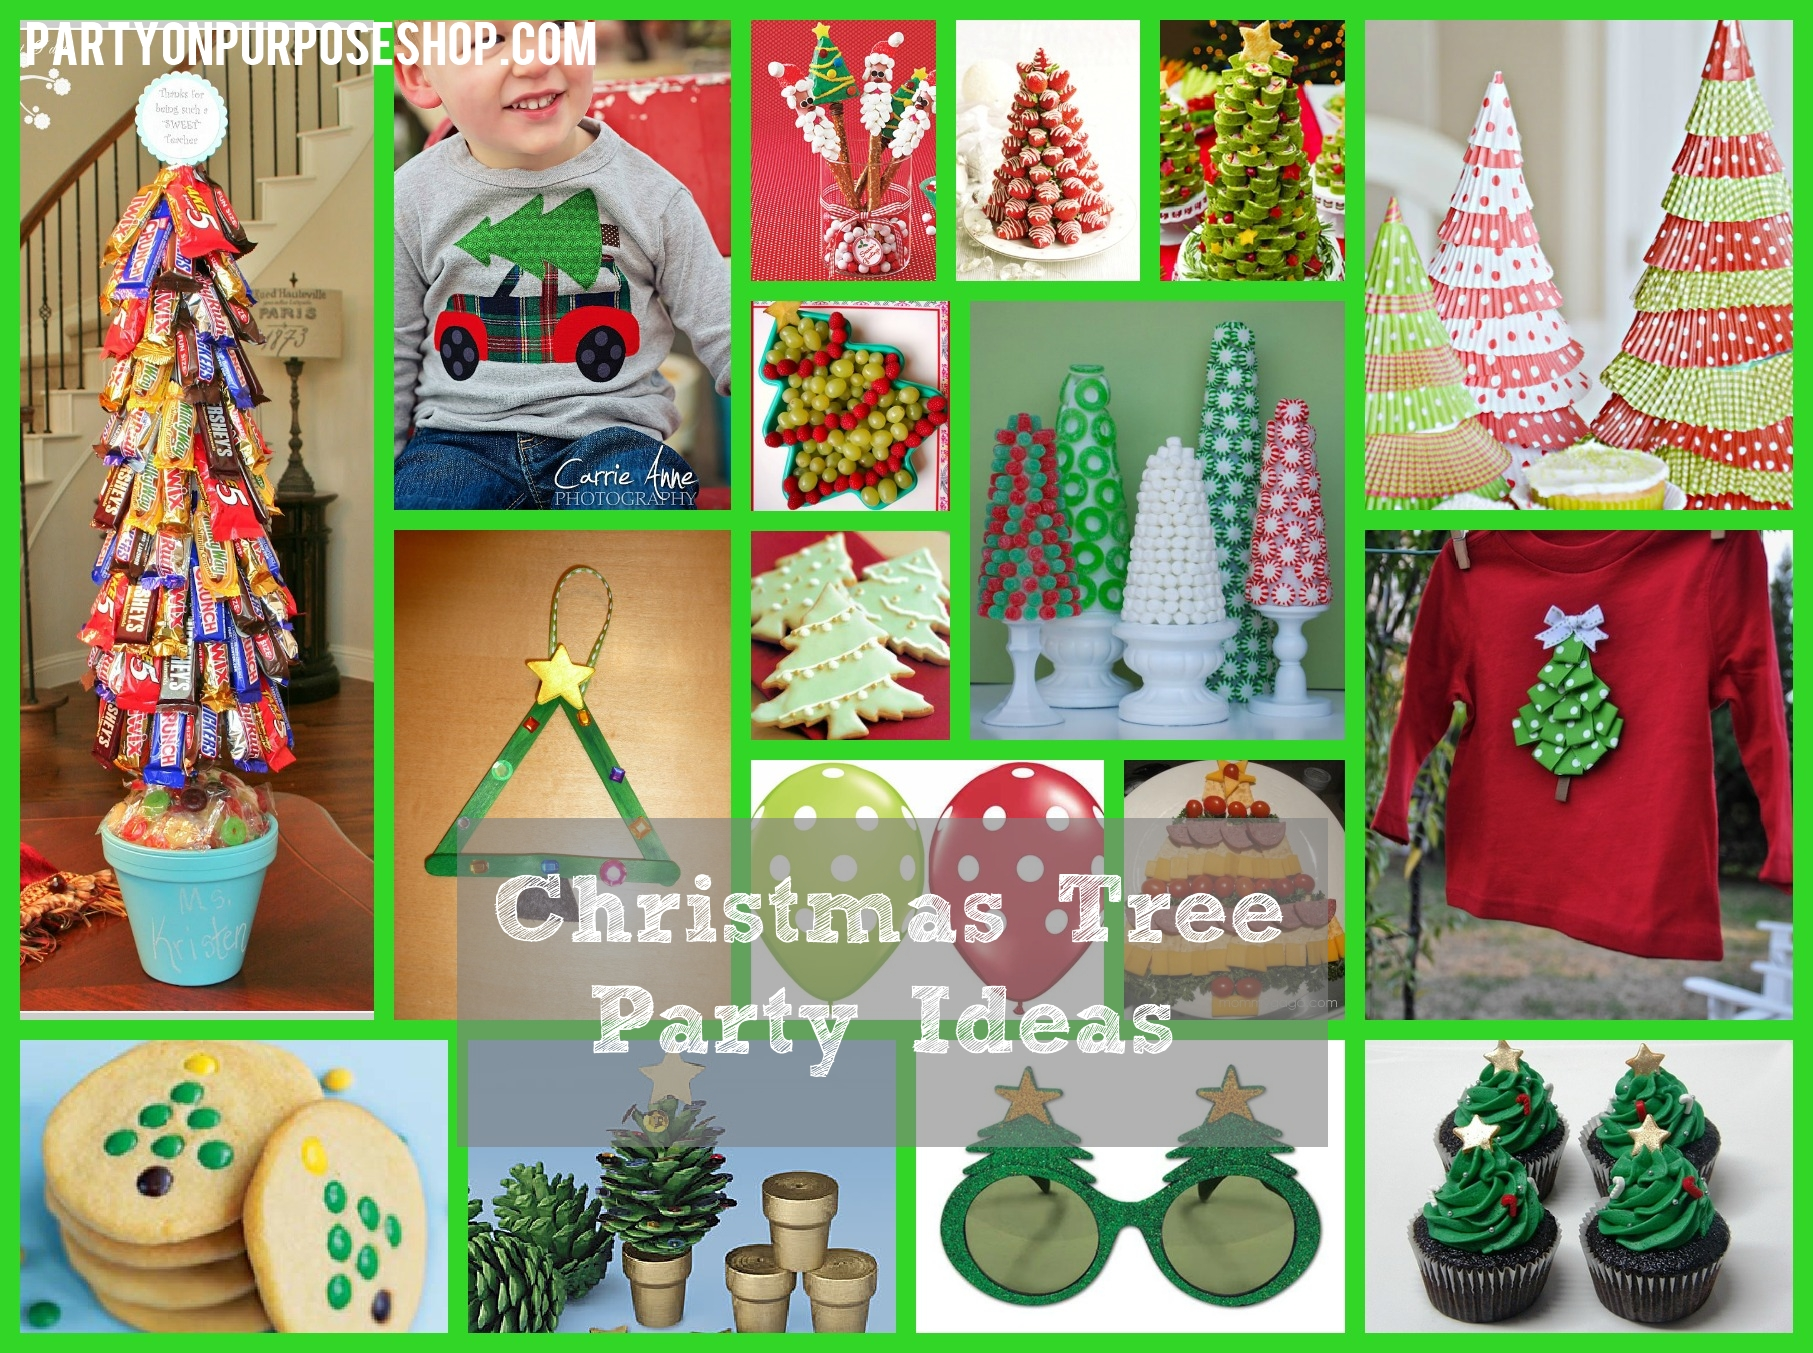 10 Best Christmas Party Ideas For Work christmas tree party ideas party on purpose